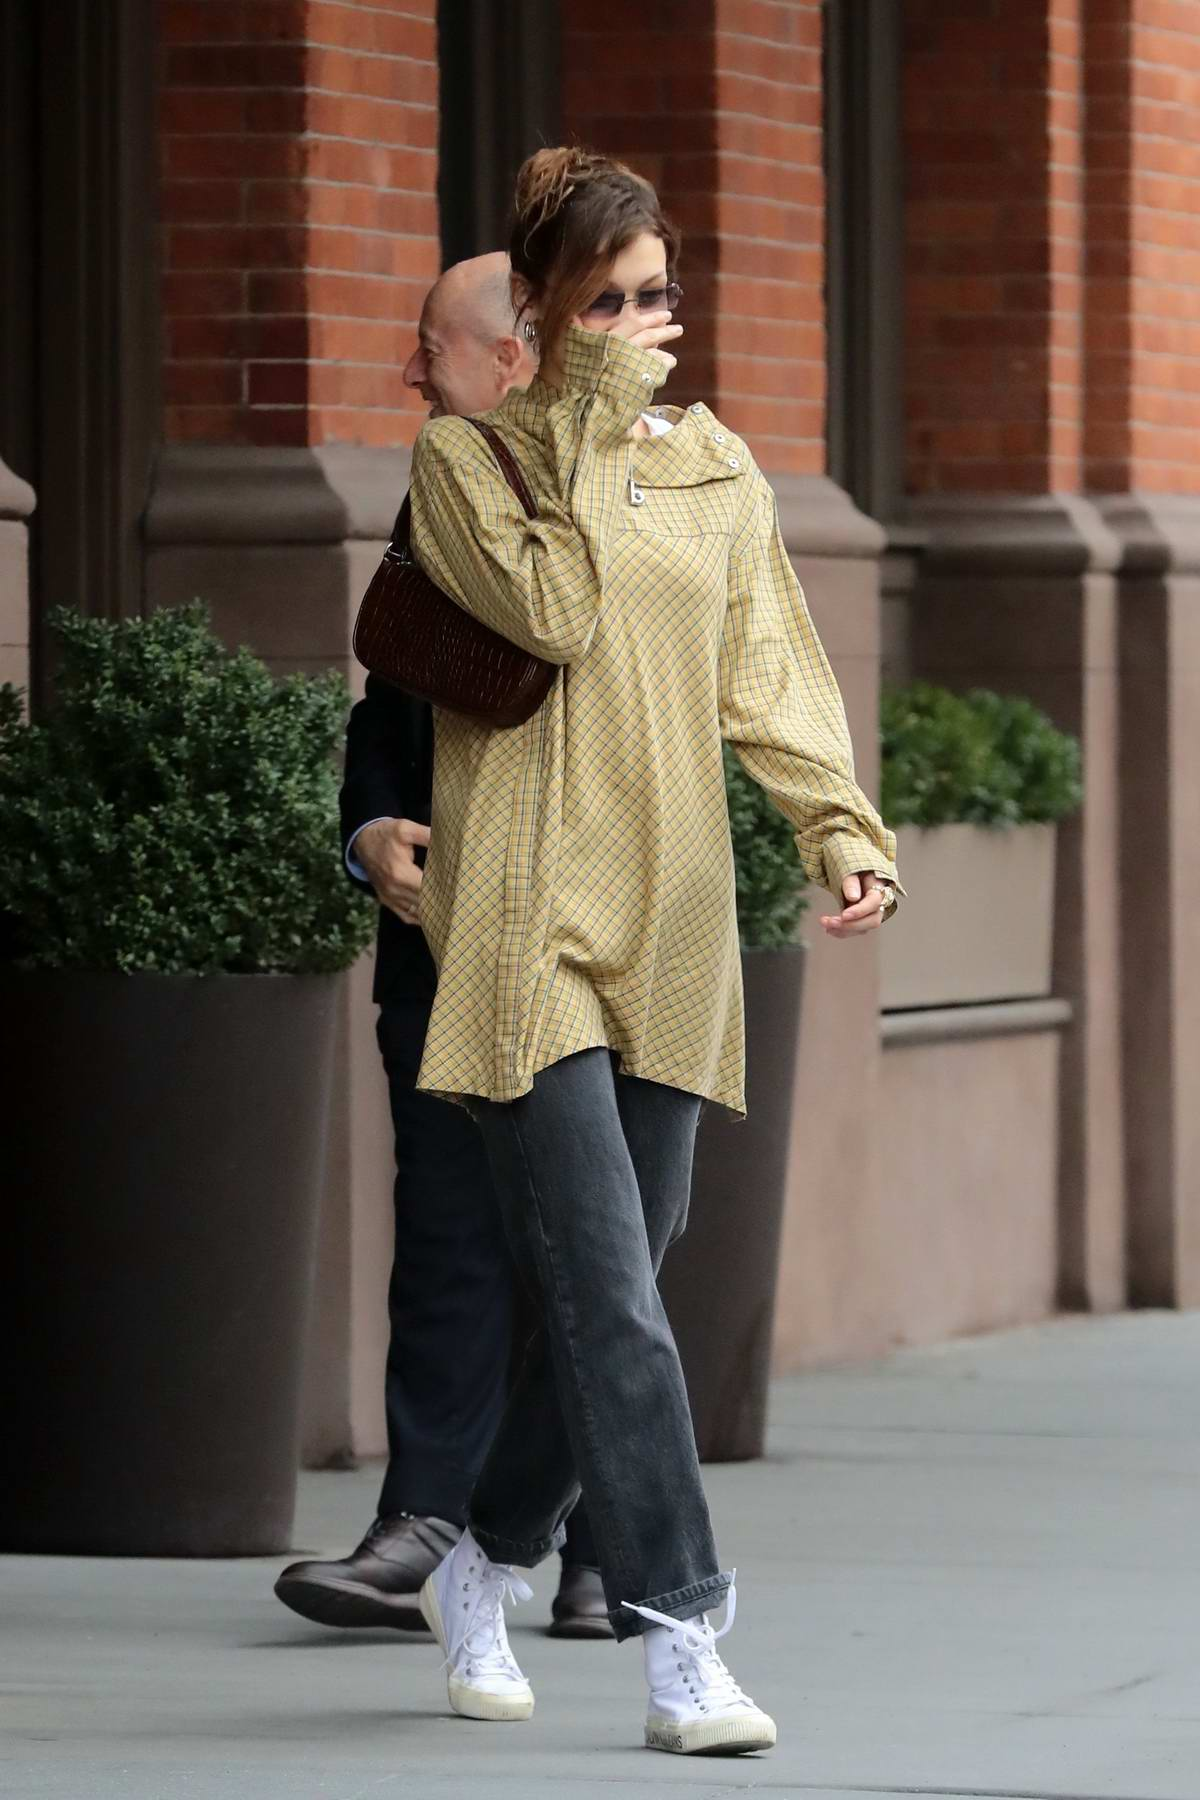 Bella Hadid sports her lighter colored hair as she heads to her ride in New York City